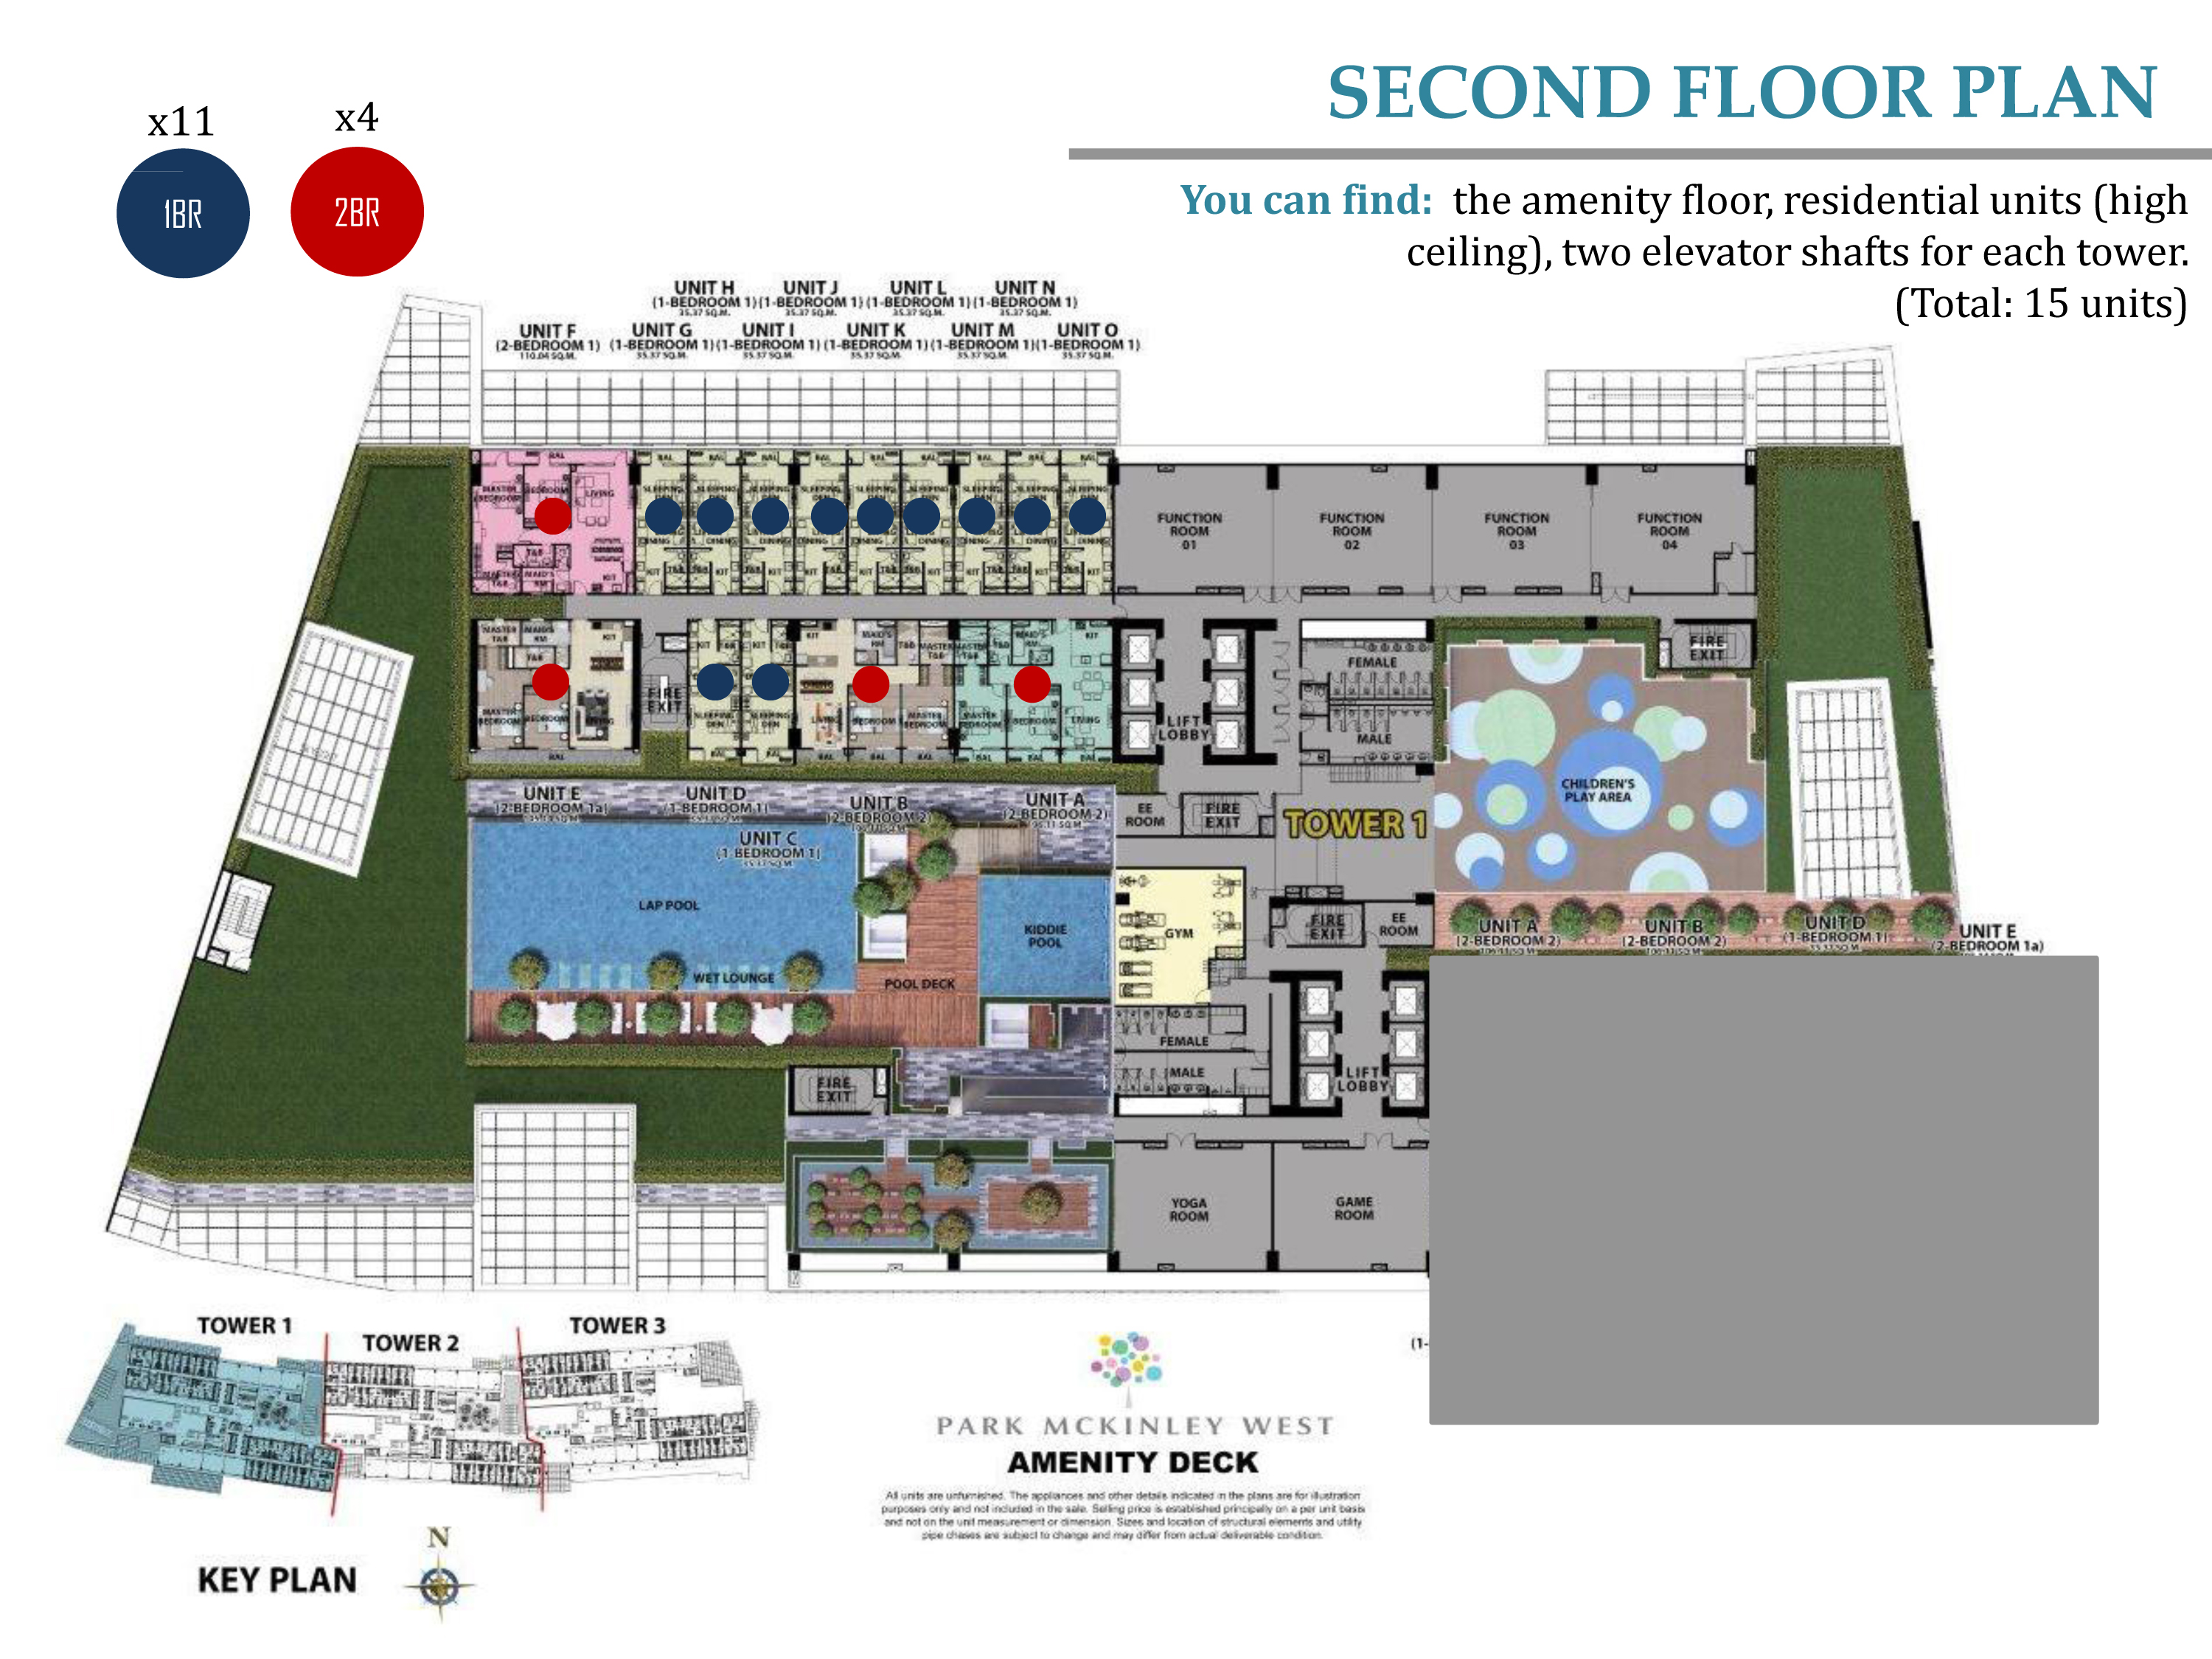 park mckinley west second floor plan